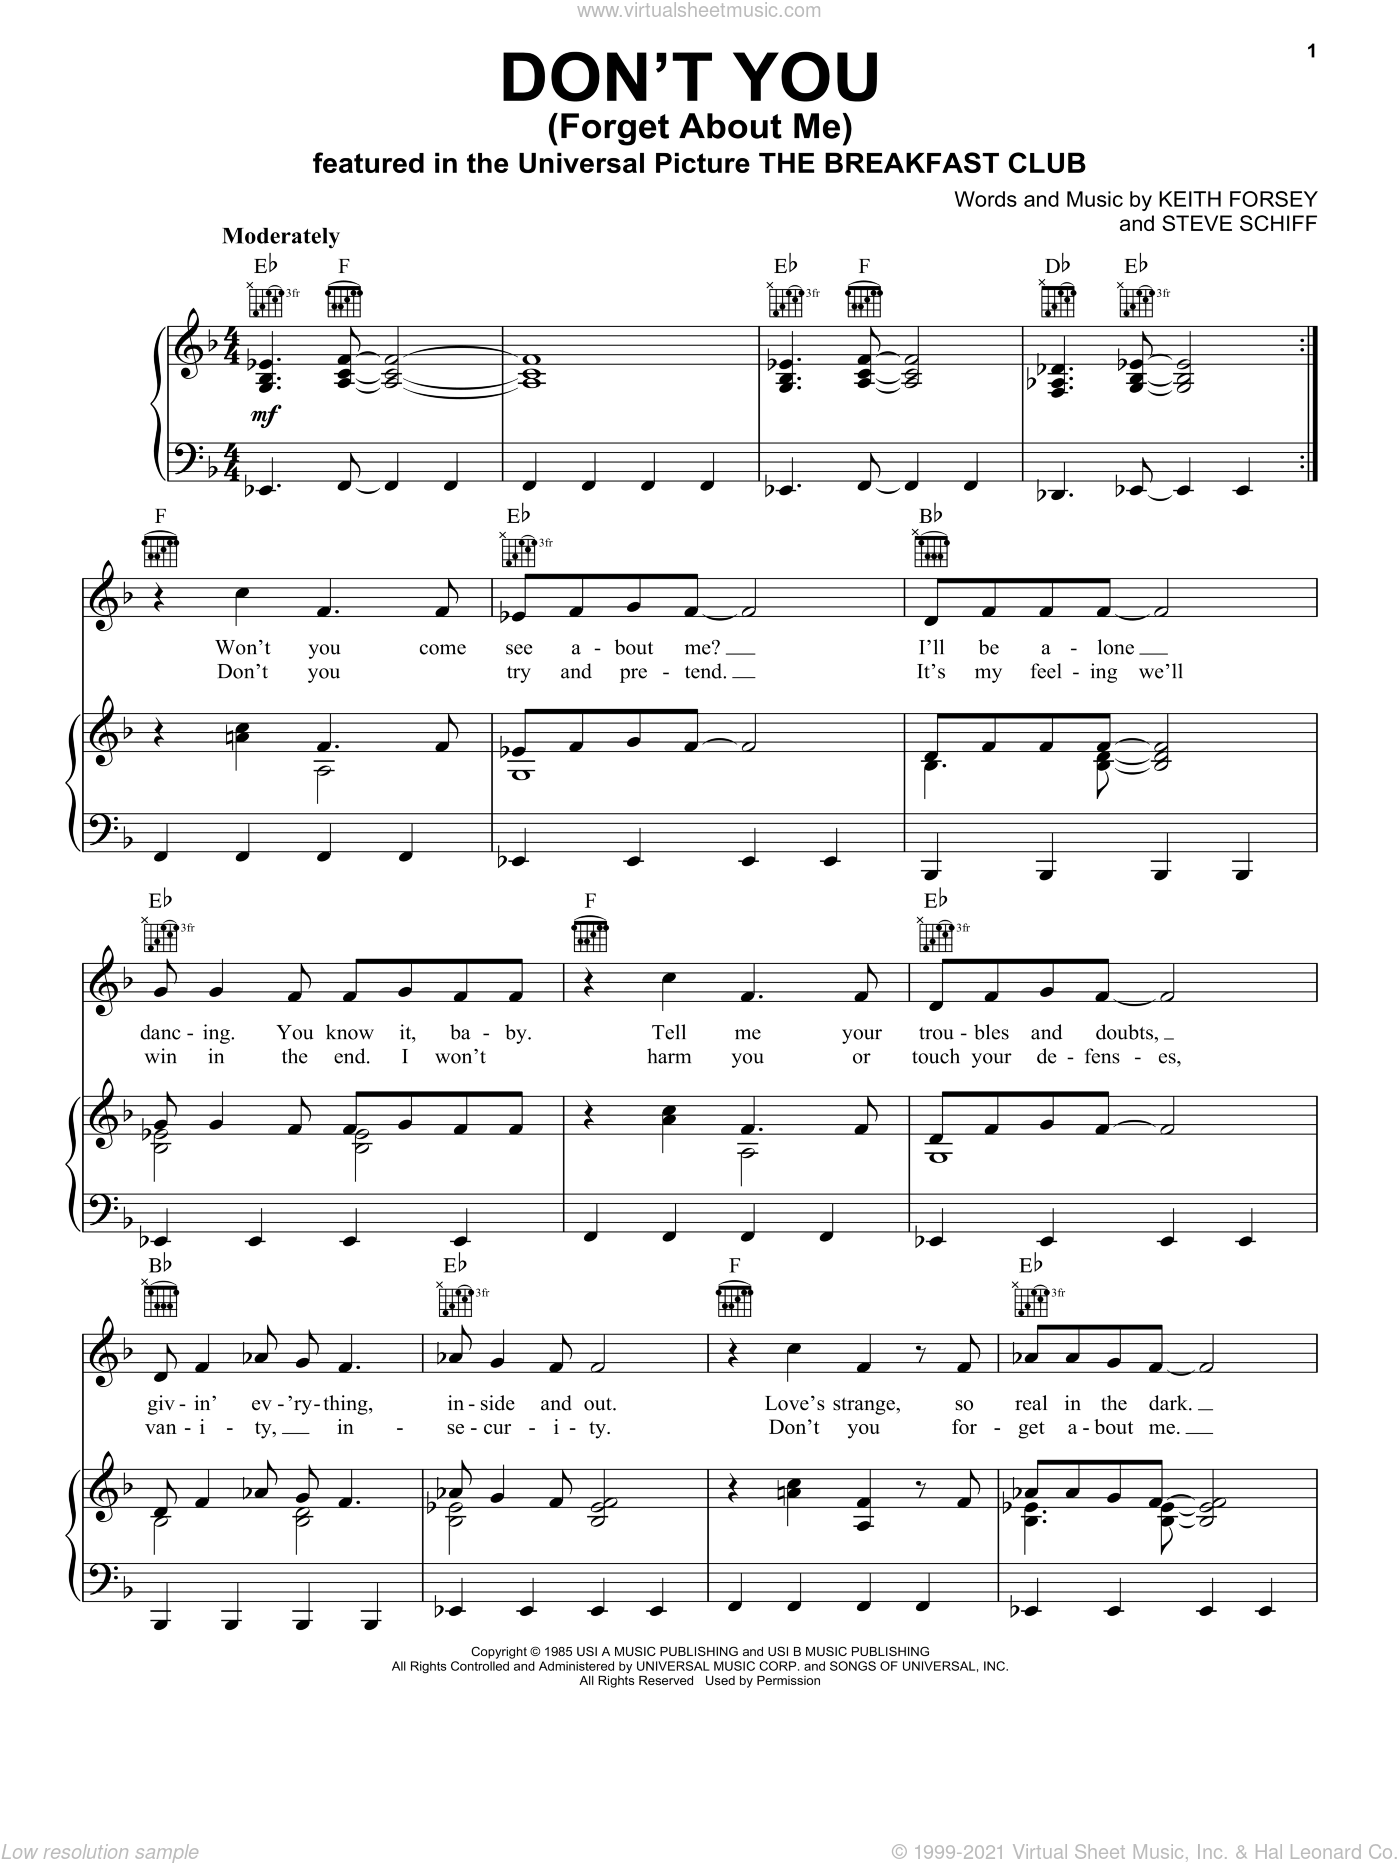 Don't You (Forget About Me) sheet music for voice, piano or guitar by Steve Schiff